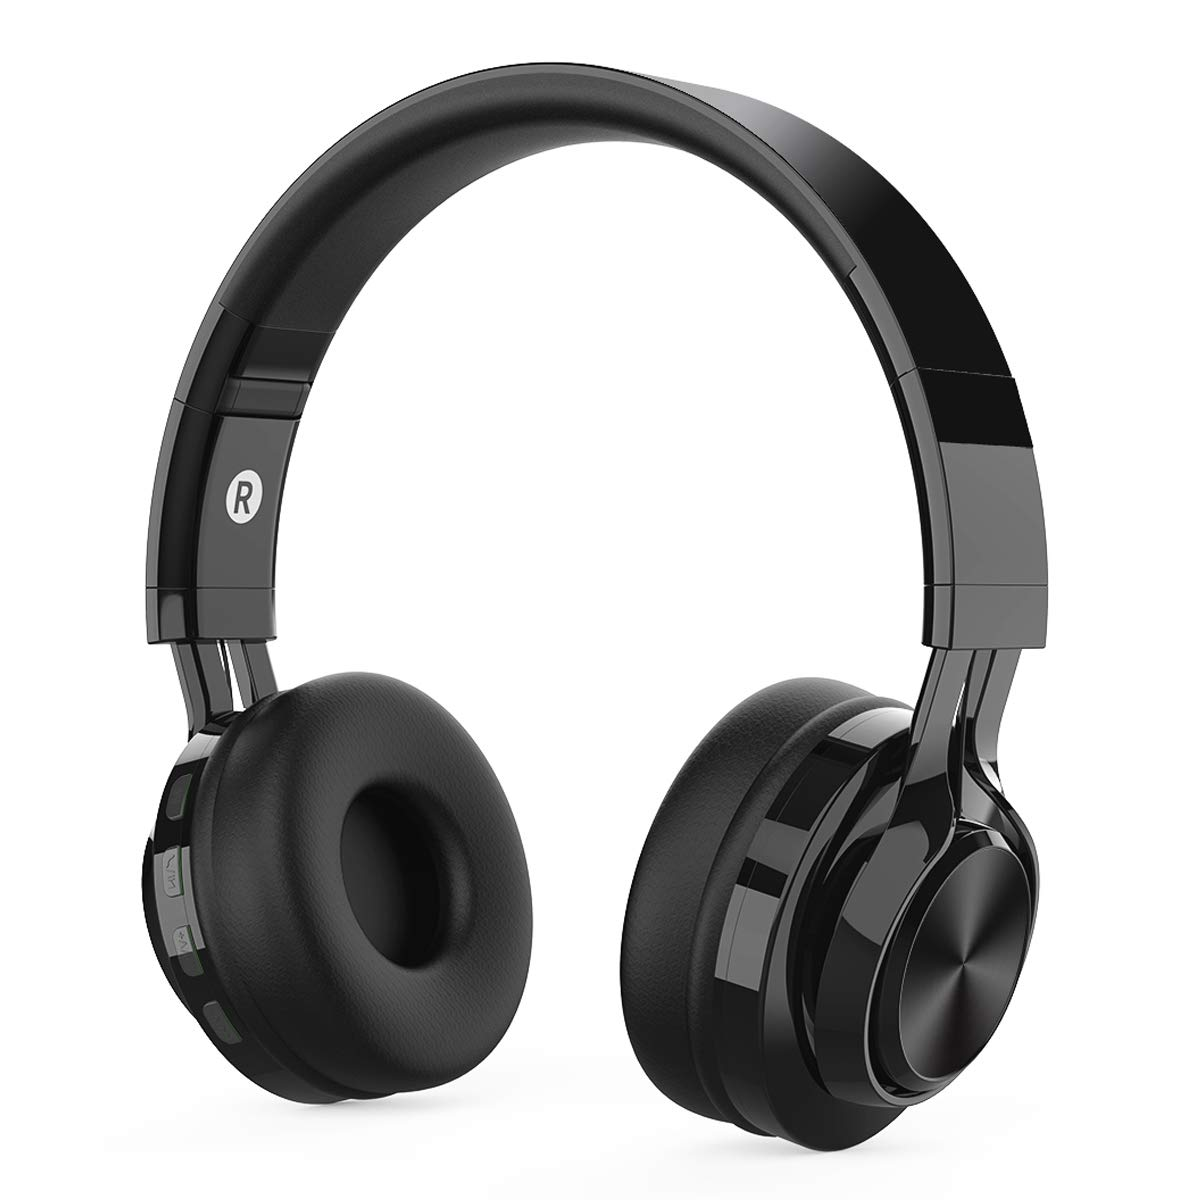 Wireless Bluetooth Headphones for Kids, MeihuaTu Foldable Hi-Fi Stereo Headset Built-in Microphone for iPhone,Samsung Huawei Xiaomi Tablets TV(Black)